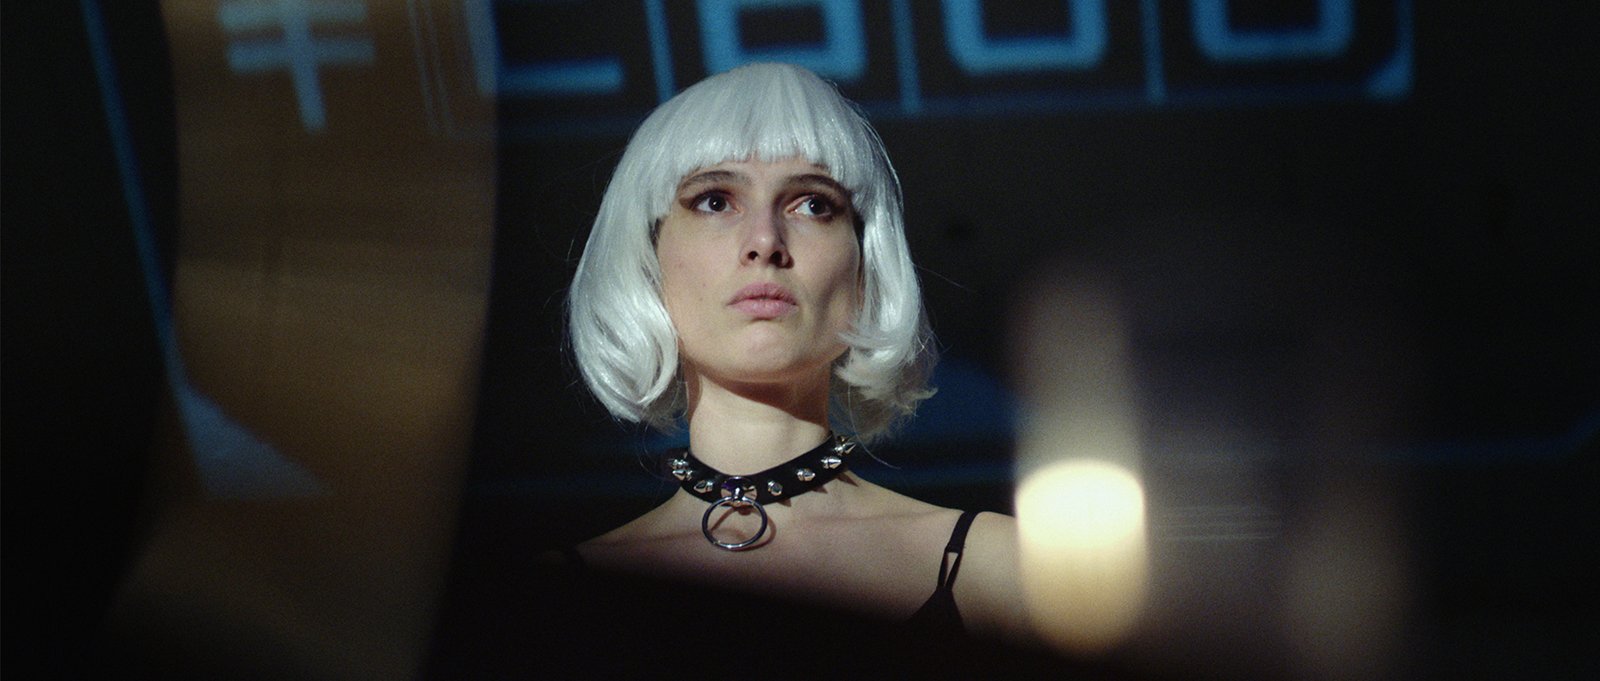 Still from the film Ningyo. It's a low angle close-up of a girl with a silver/white wig on. She's wearing a collar.